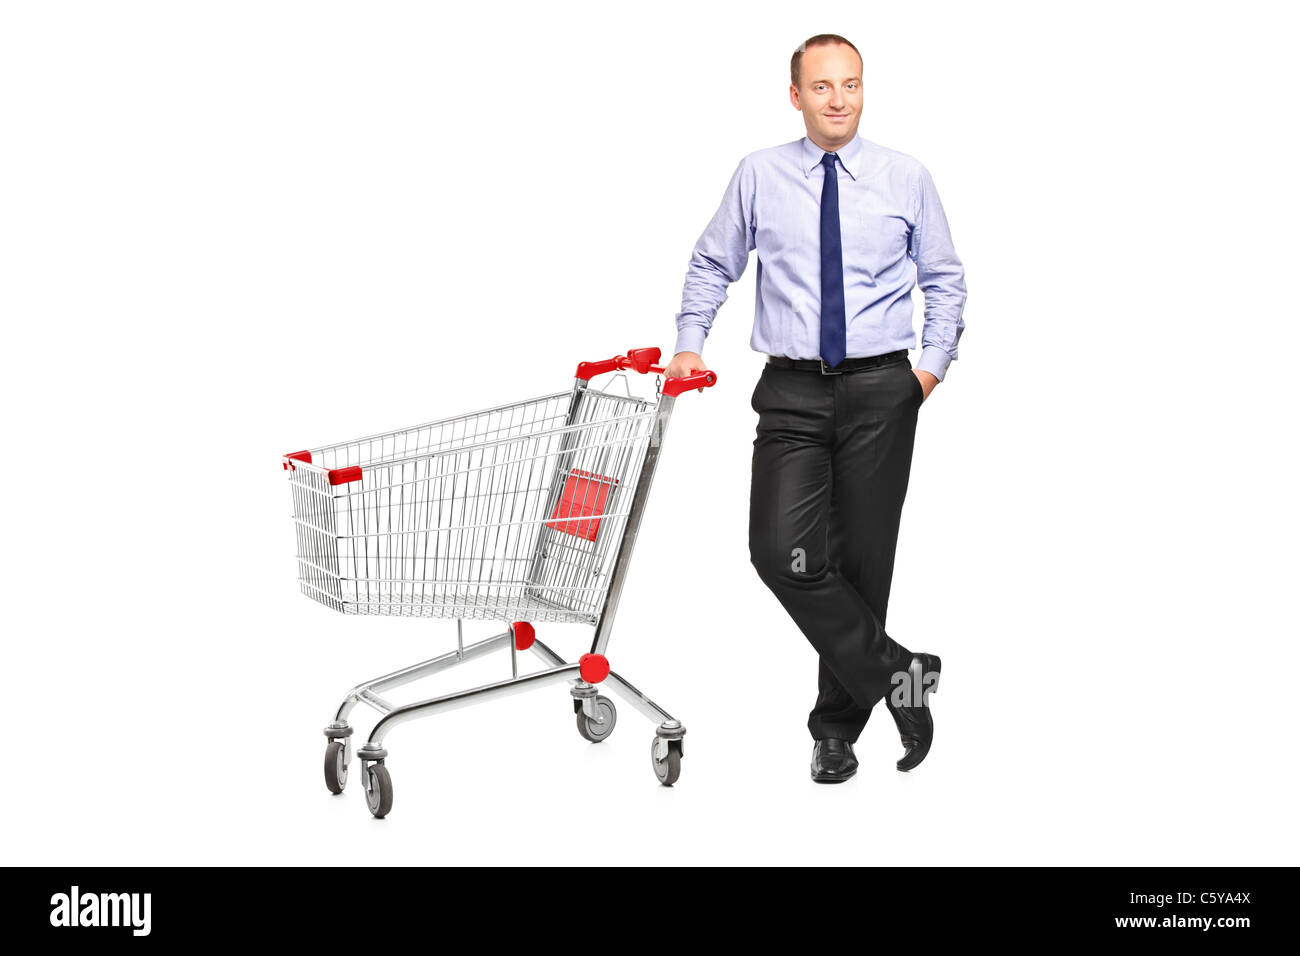 Full length portrait of a man posing next to an empty shopping cart - Stock Image